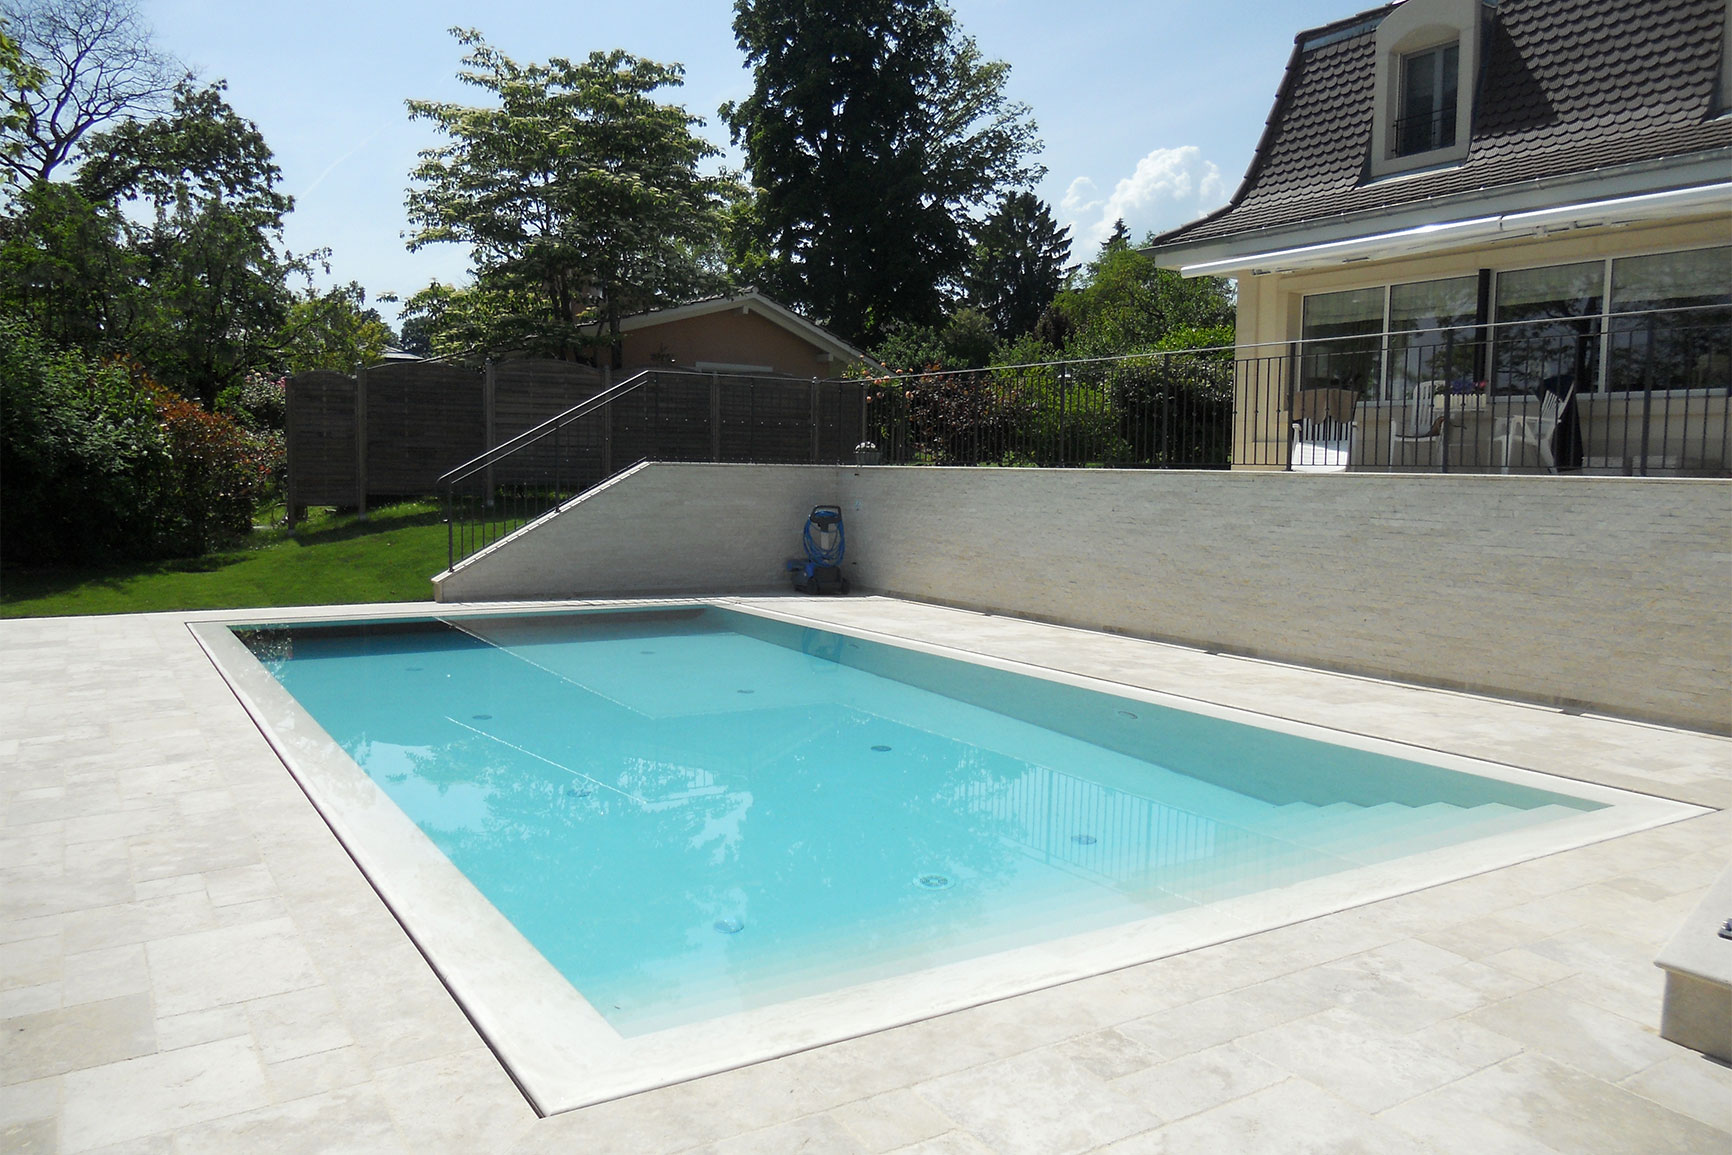 Piscine carrelage et d bordement couverture grando for Piscine miroir d eau